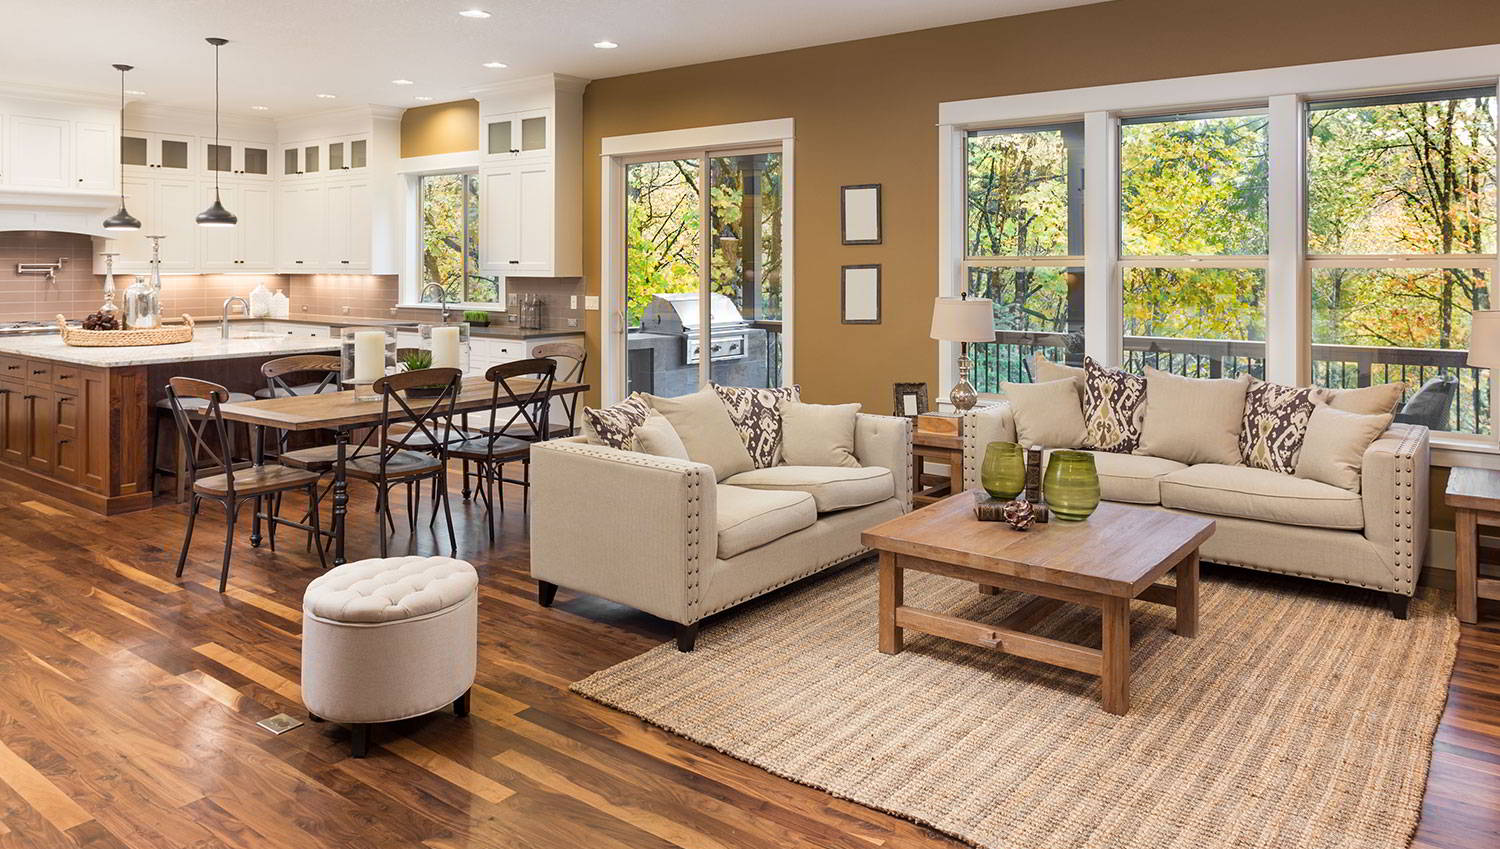 Home Remodeling Contractor in Tucson